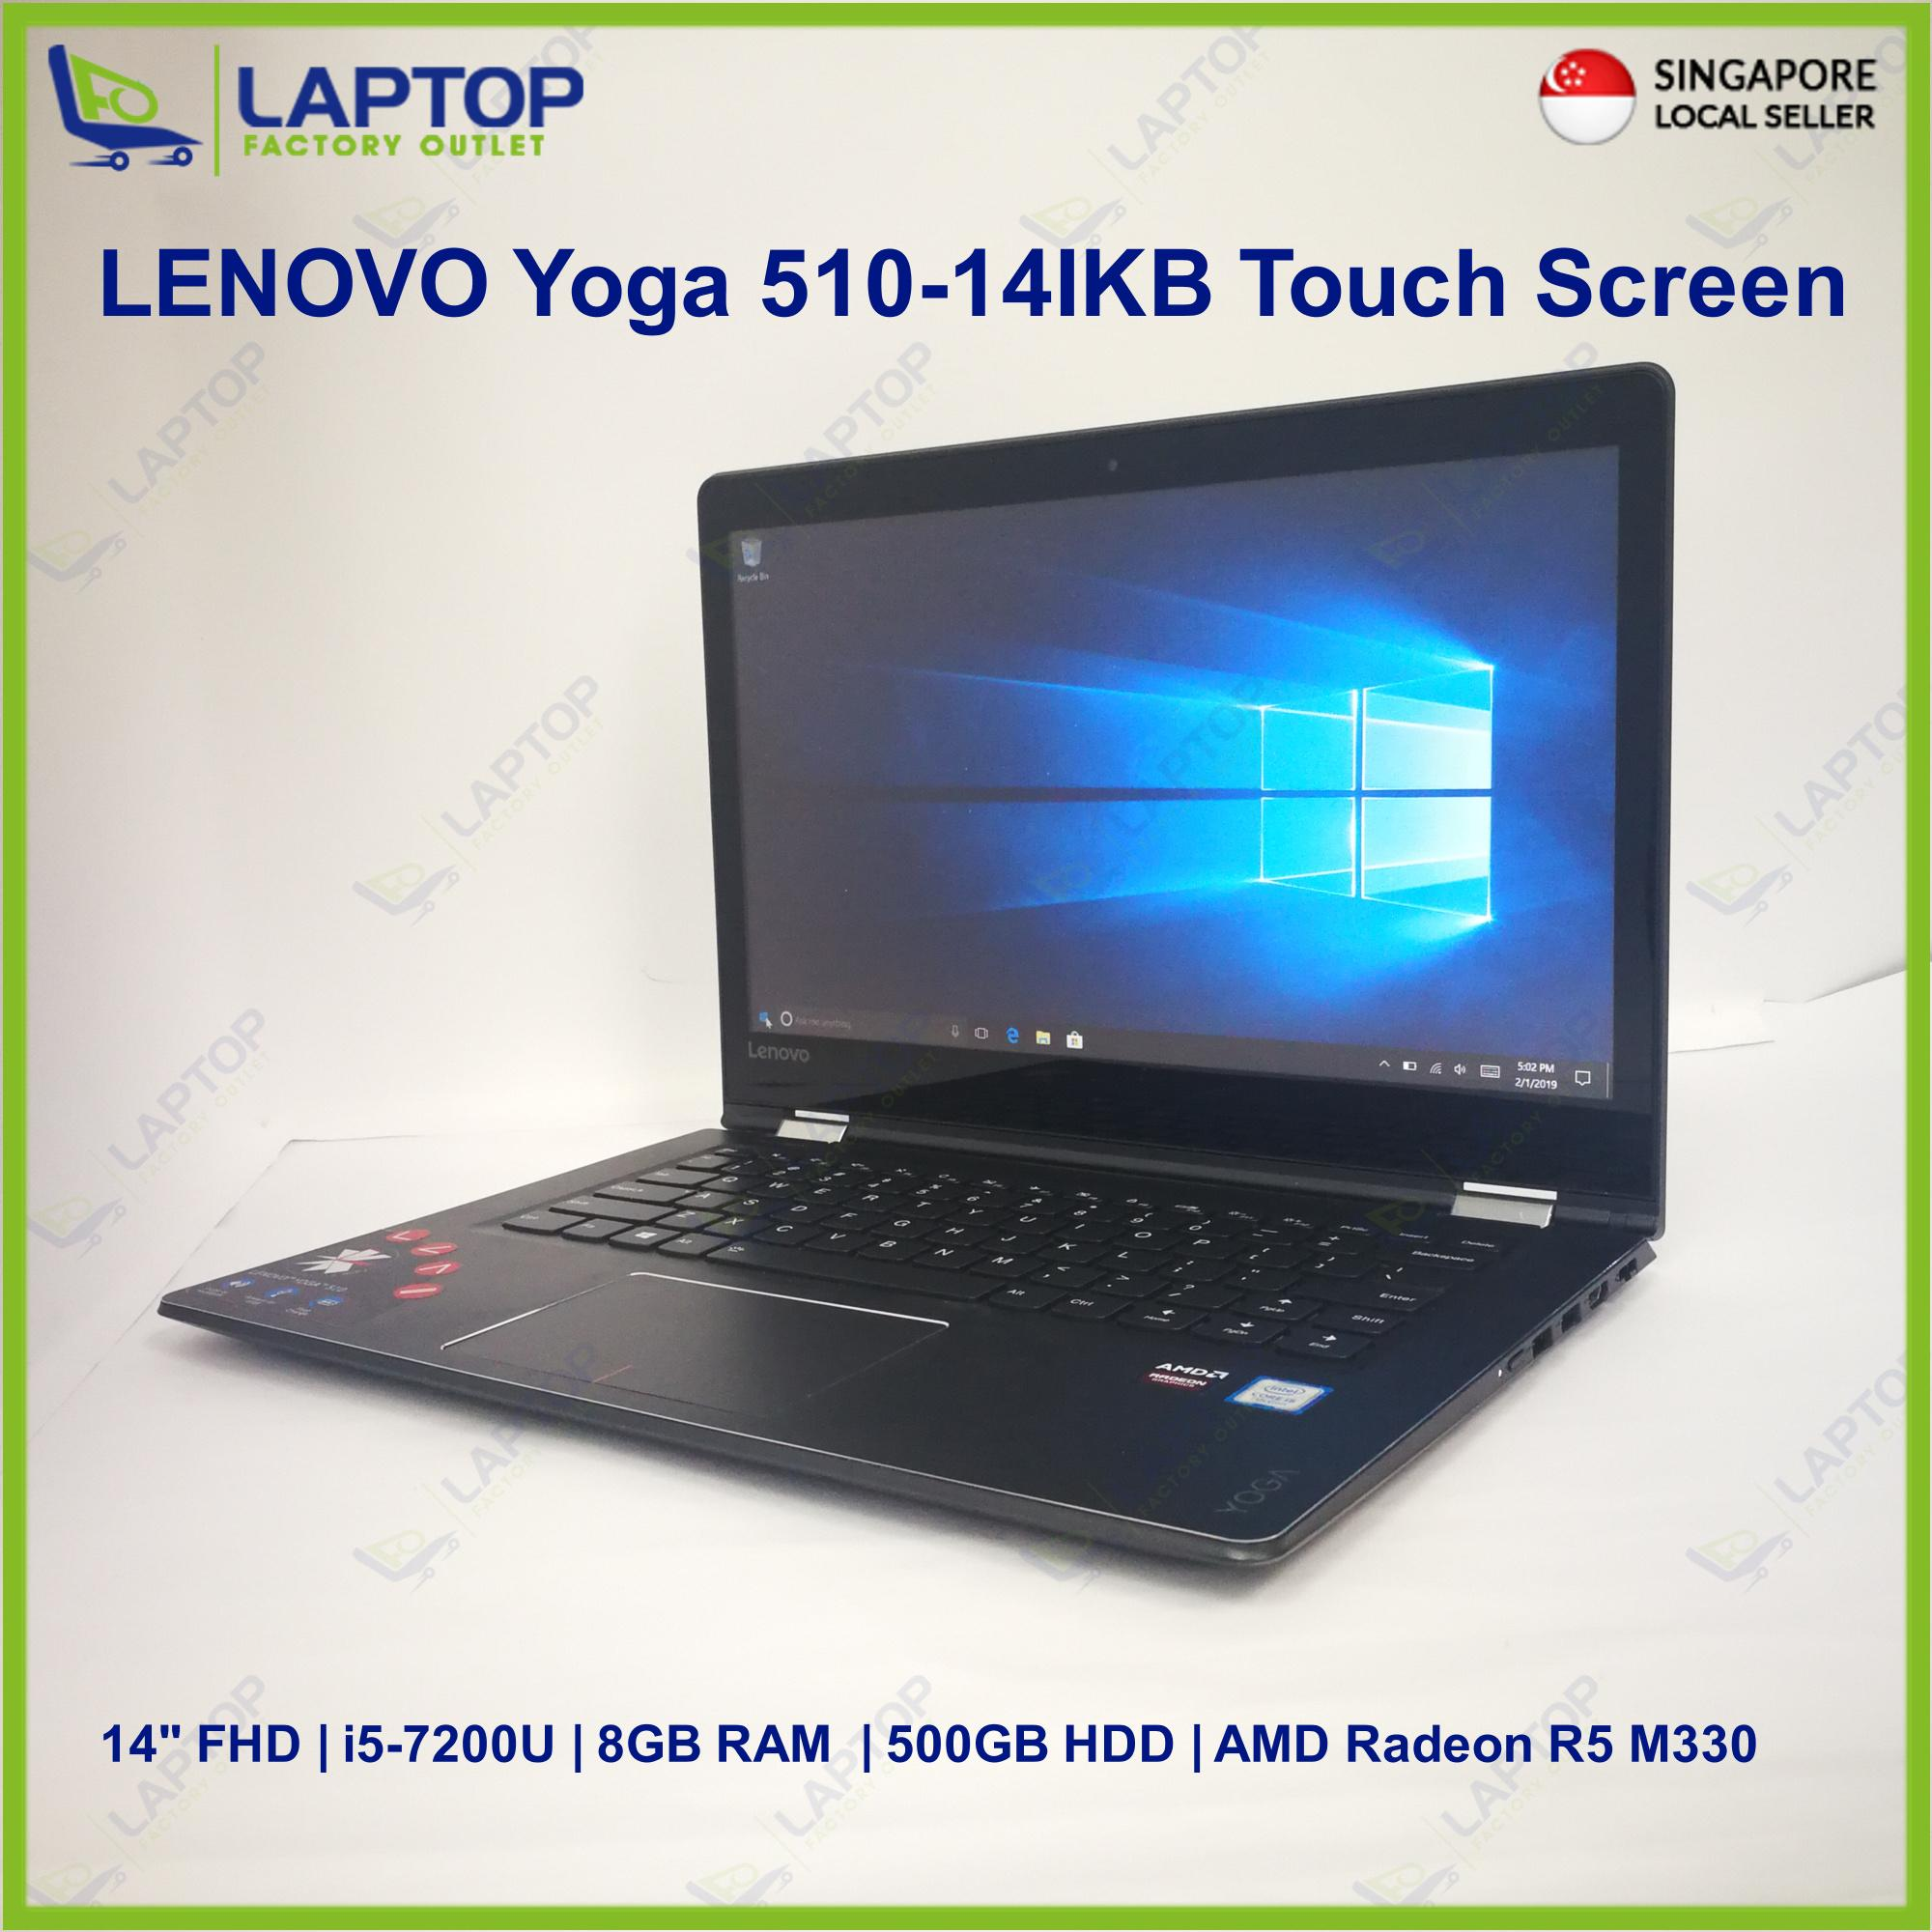 LENOVO Yoga 510-14IKB Touch Screen (i5-7/8GB/500GB) Premium Preowned [Refurbished]